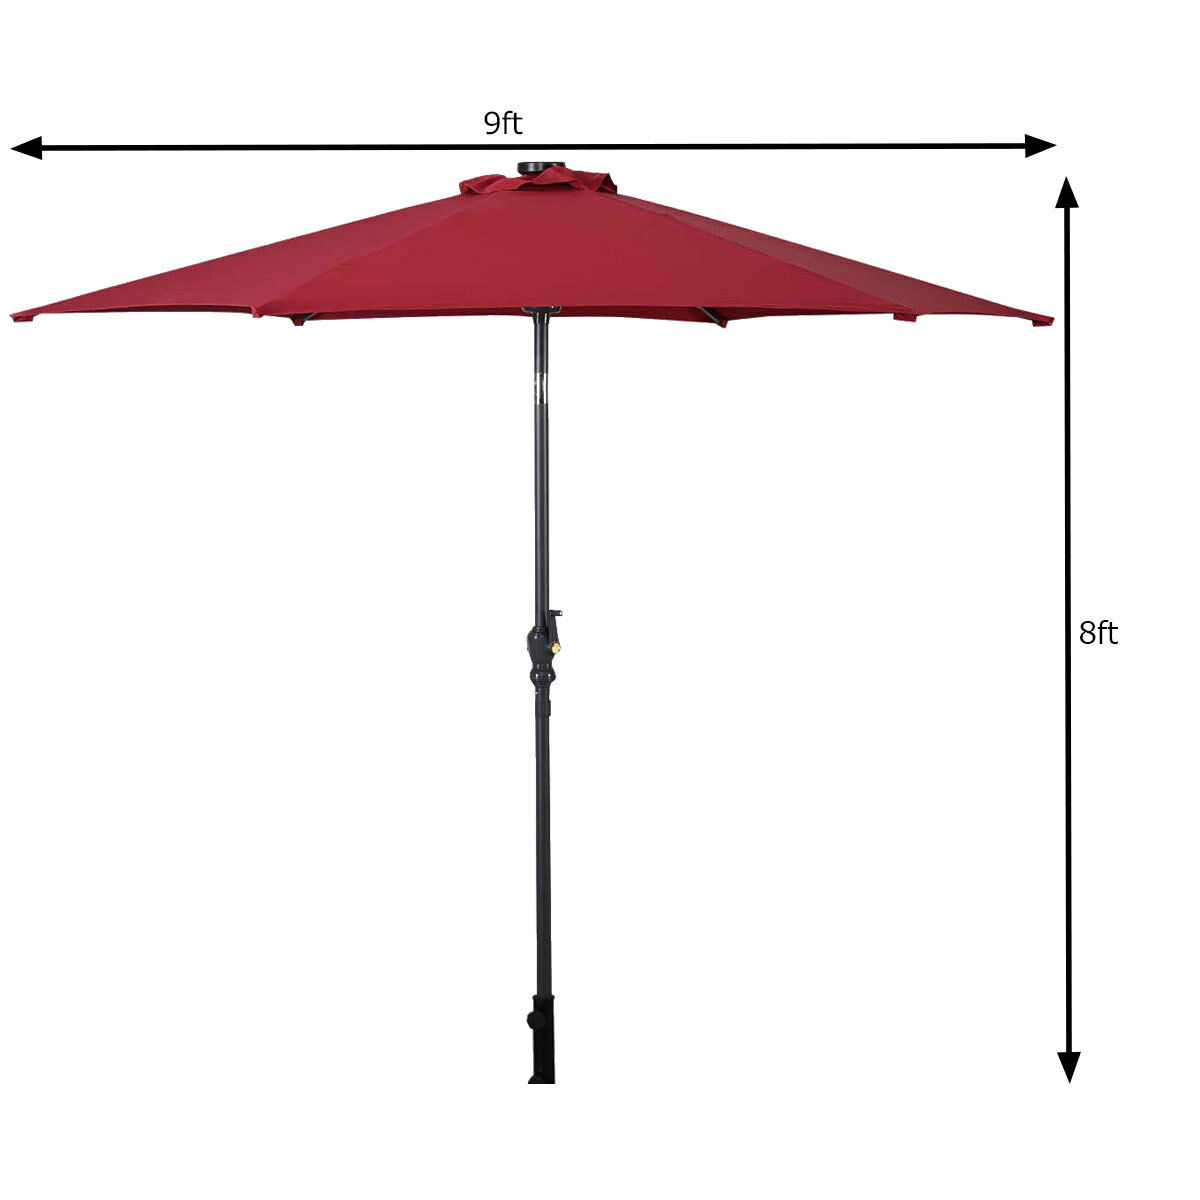 9FT-Patio-Solar-Umbrella-LED-Patio-Market-Steel-Tilt-W-Crank-Outdoor-GOPLUS-New thumbnail 17